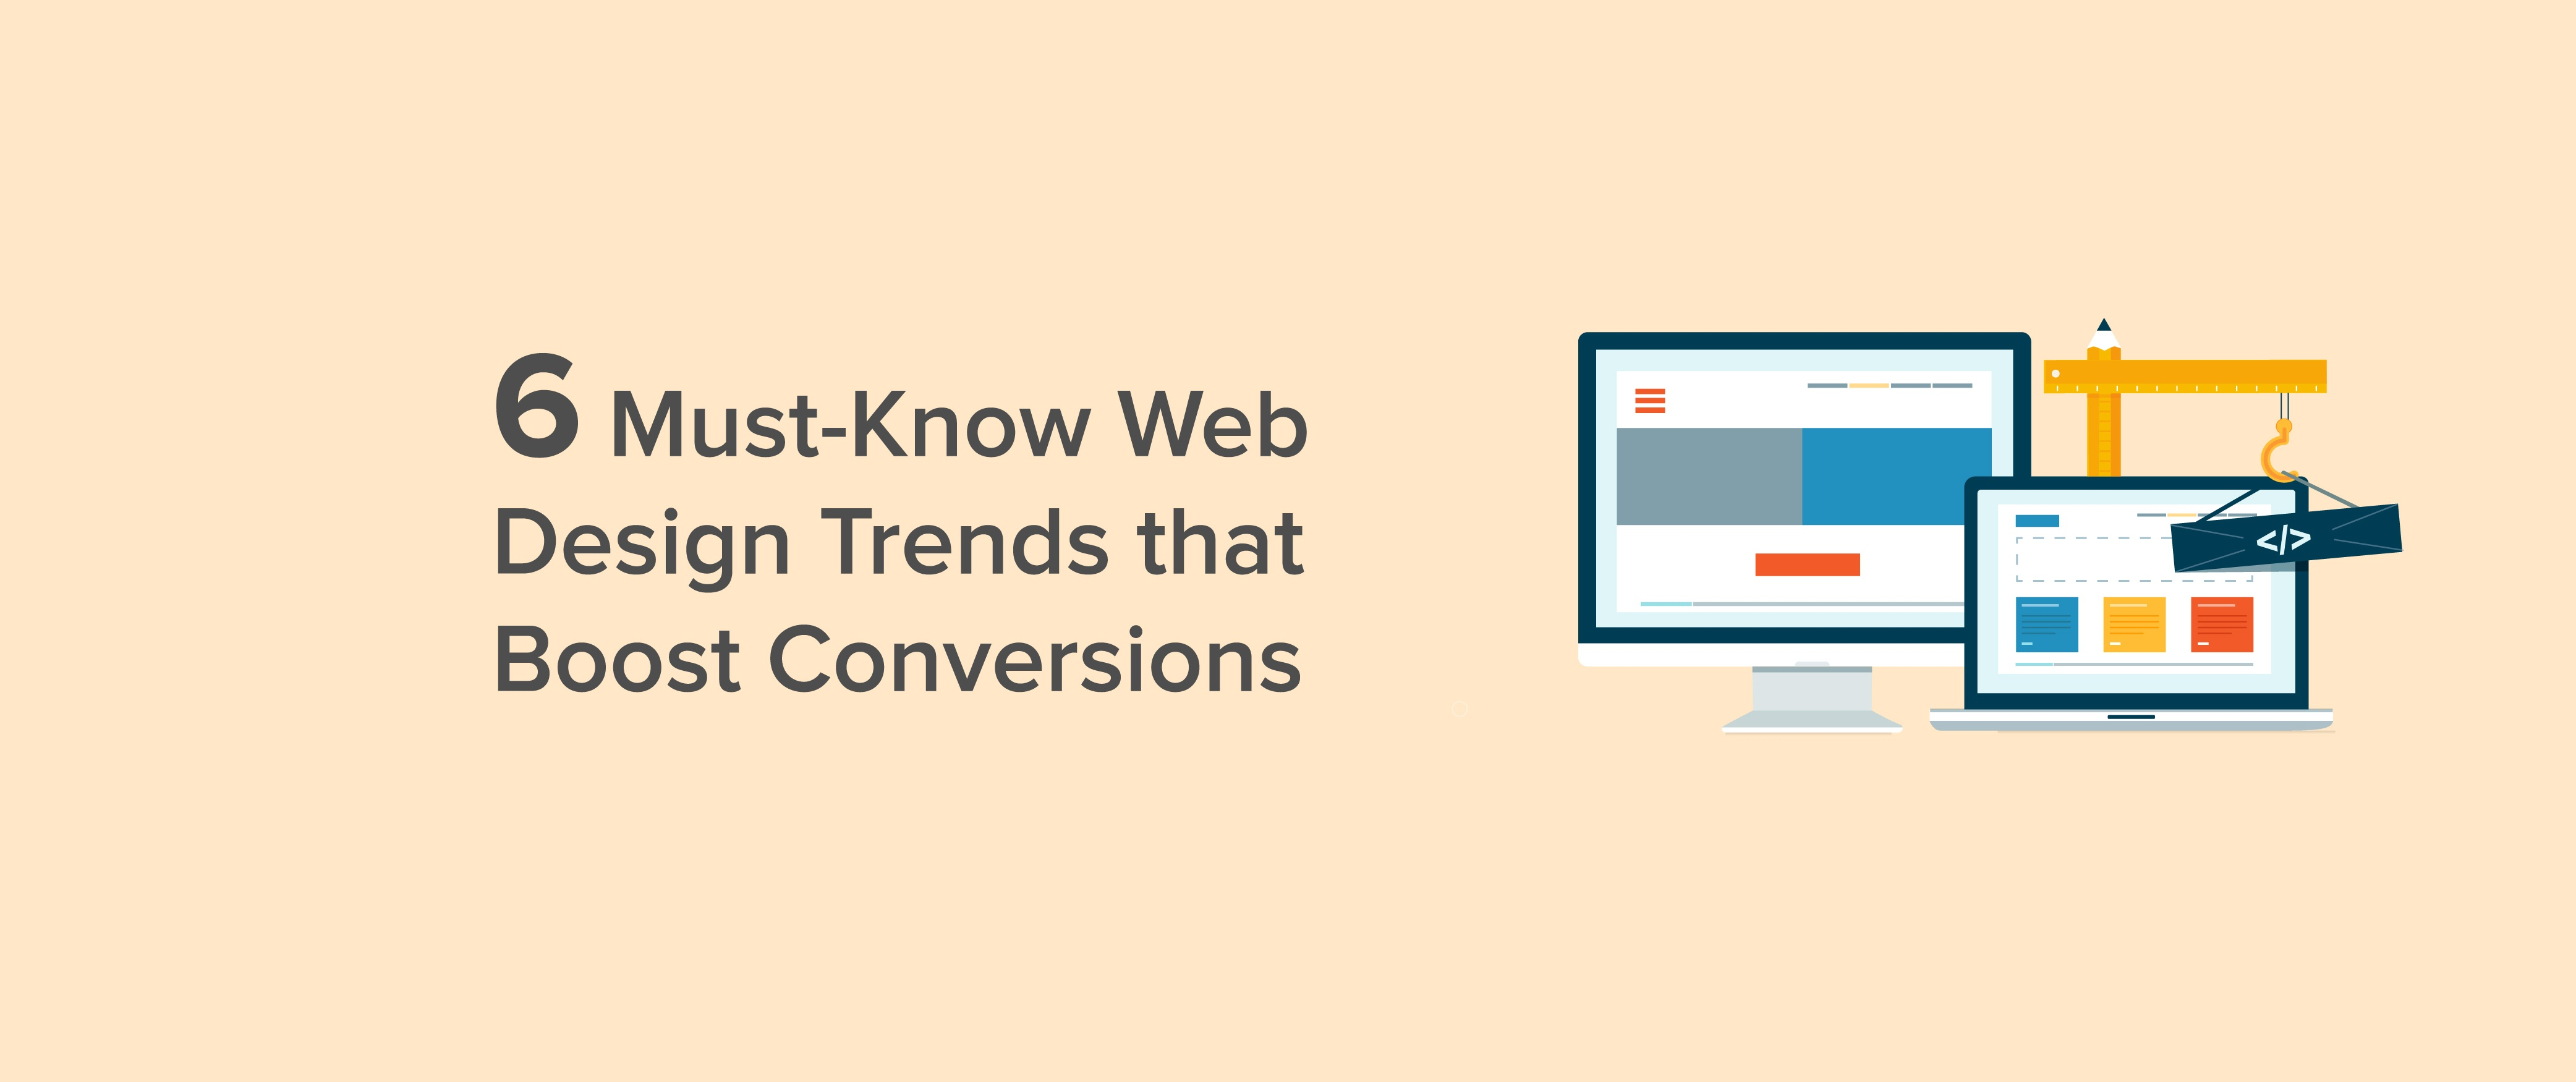 6 Must-Know Web Design Trends that Boost Conversions